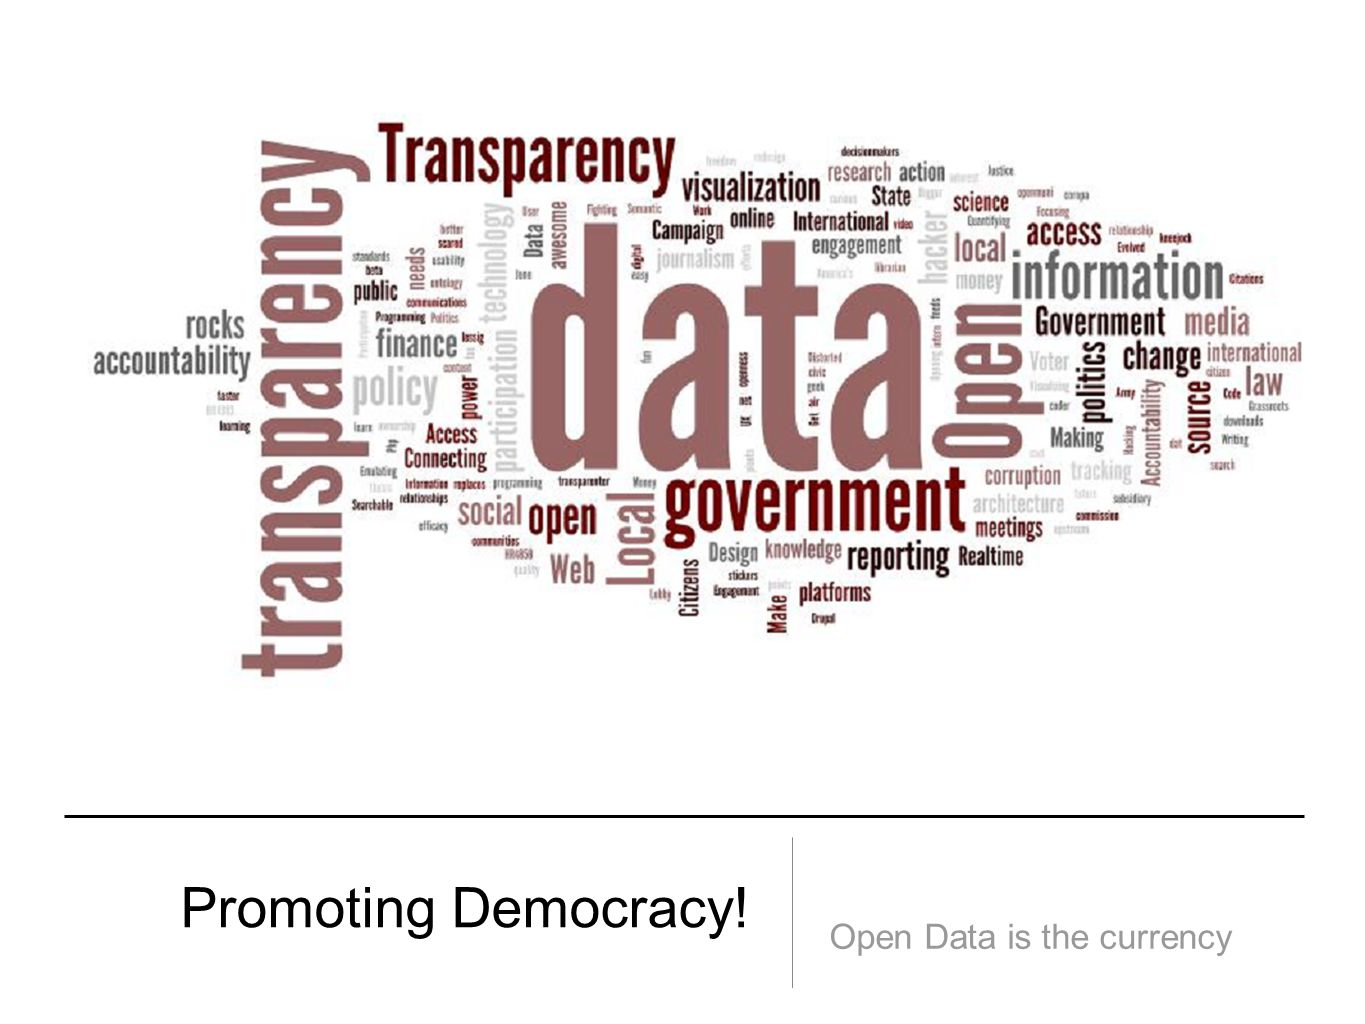 Promoting Democracy! Open Data is the currency